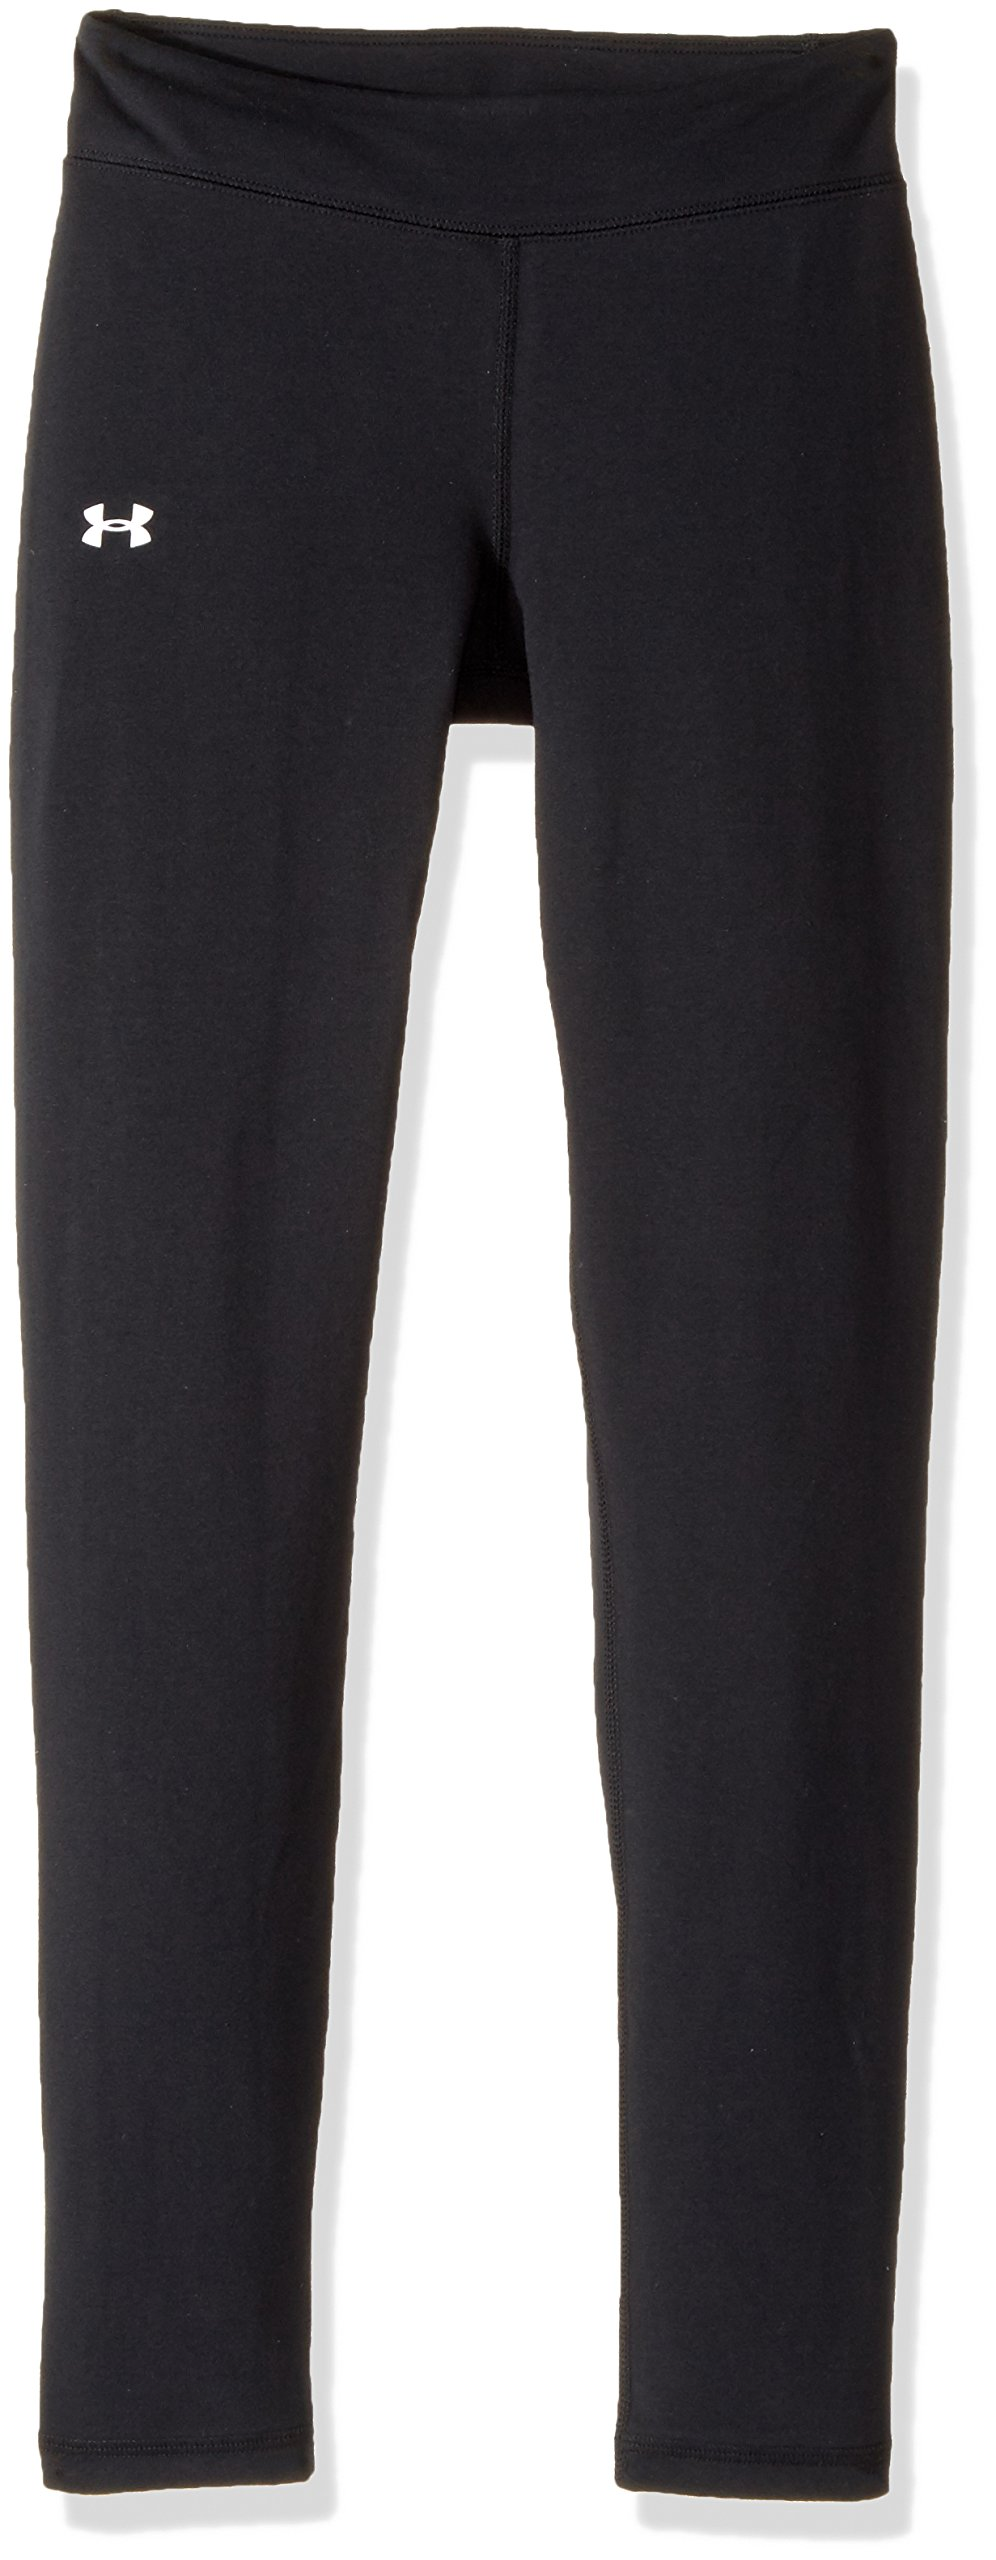 Under Armour Girls Favorite Knit Leggings, Black (001)/White, Youth X-Large by Under Armour